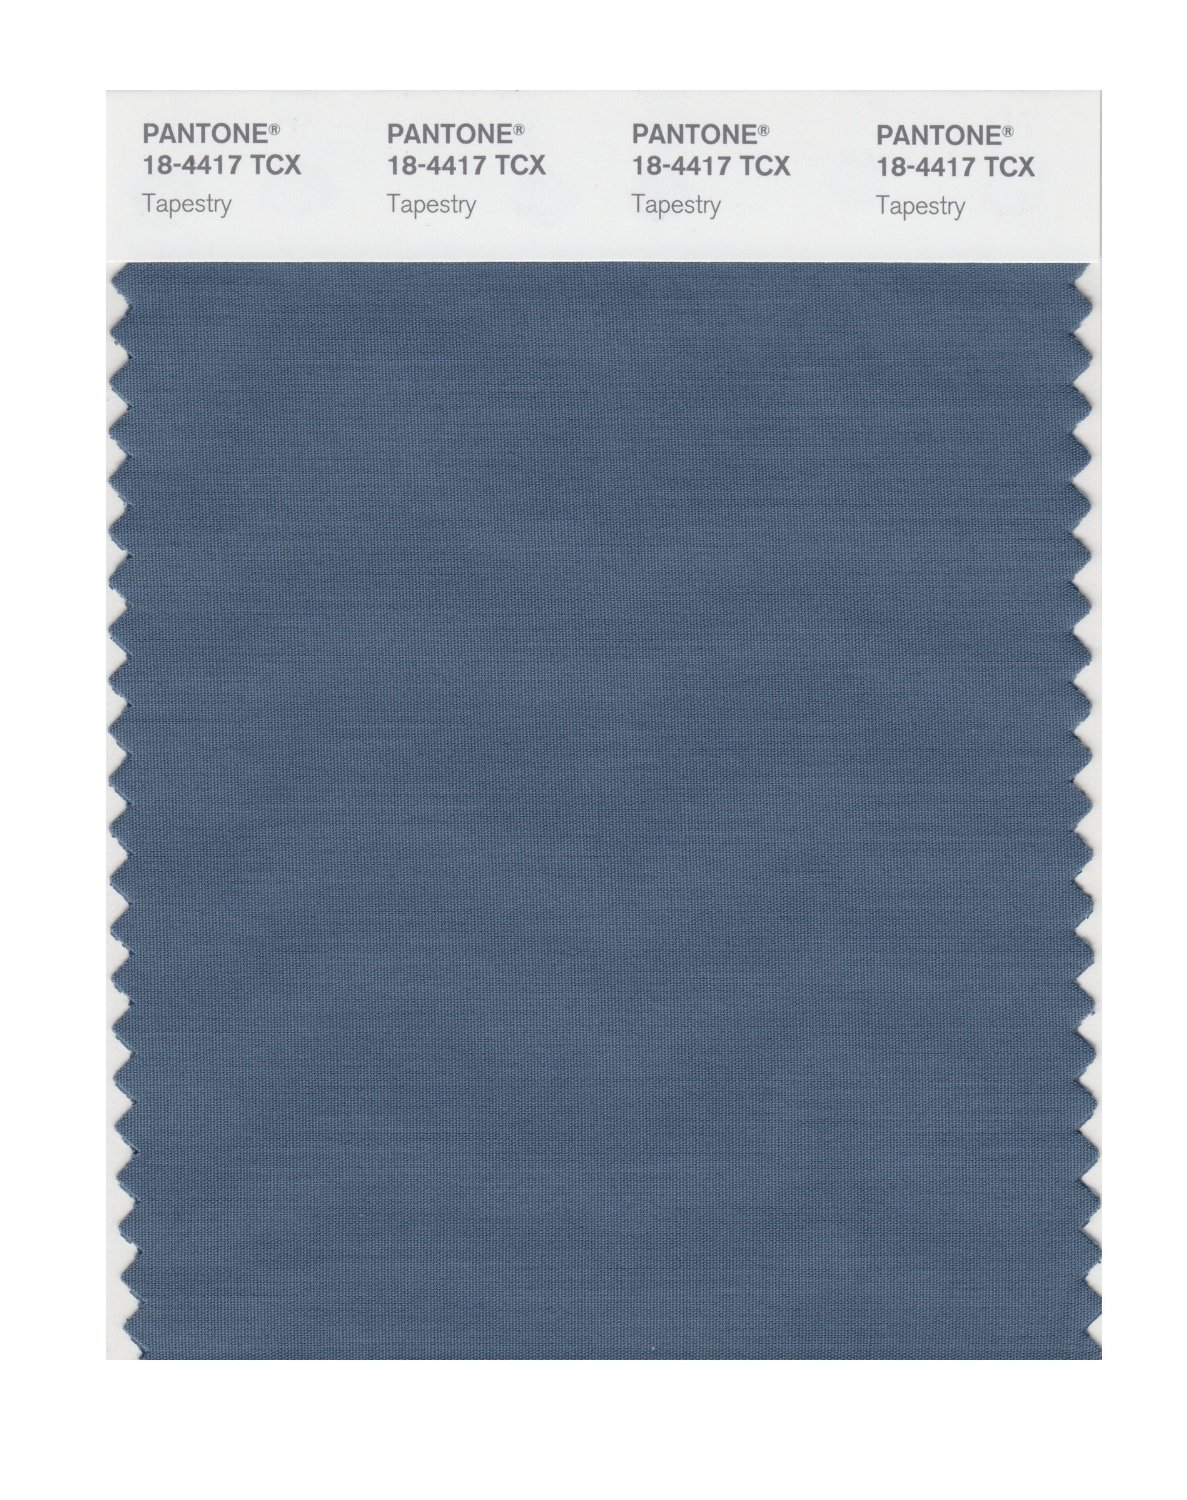 Pantone Smart Swatch 18-4417 Tapestry